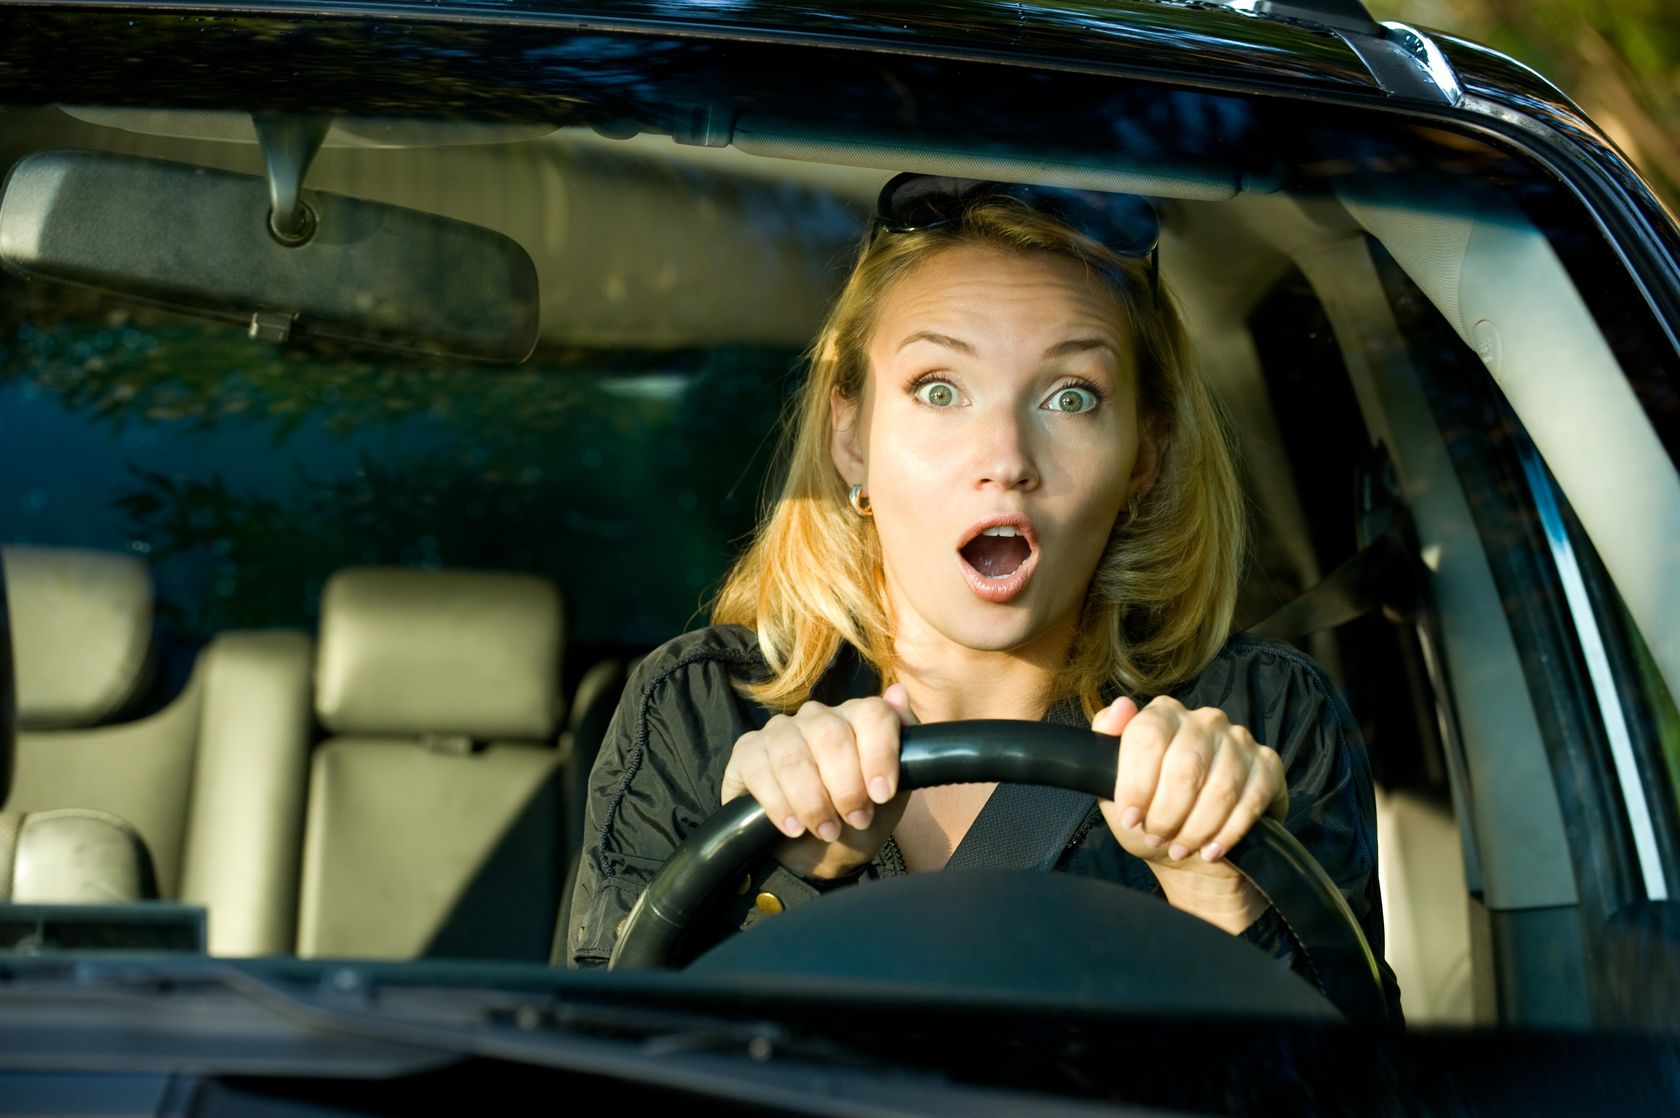 5 Most Common DMV Driving Test Mistakes